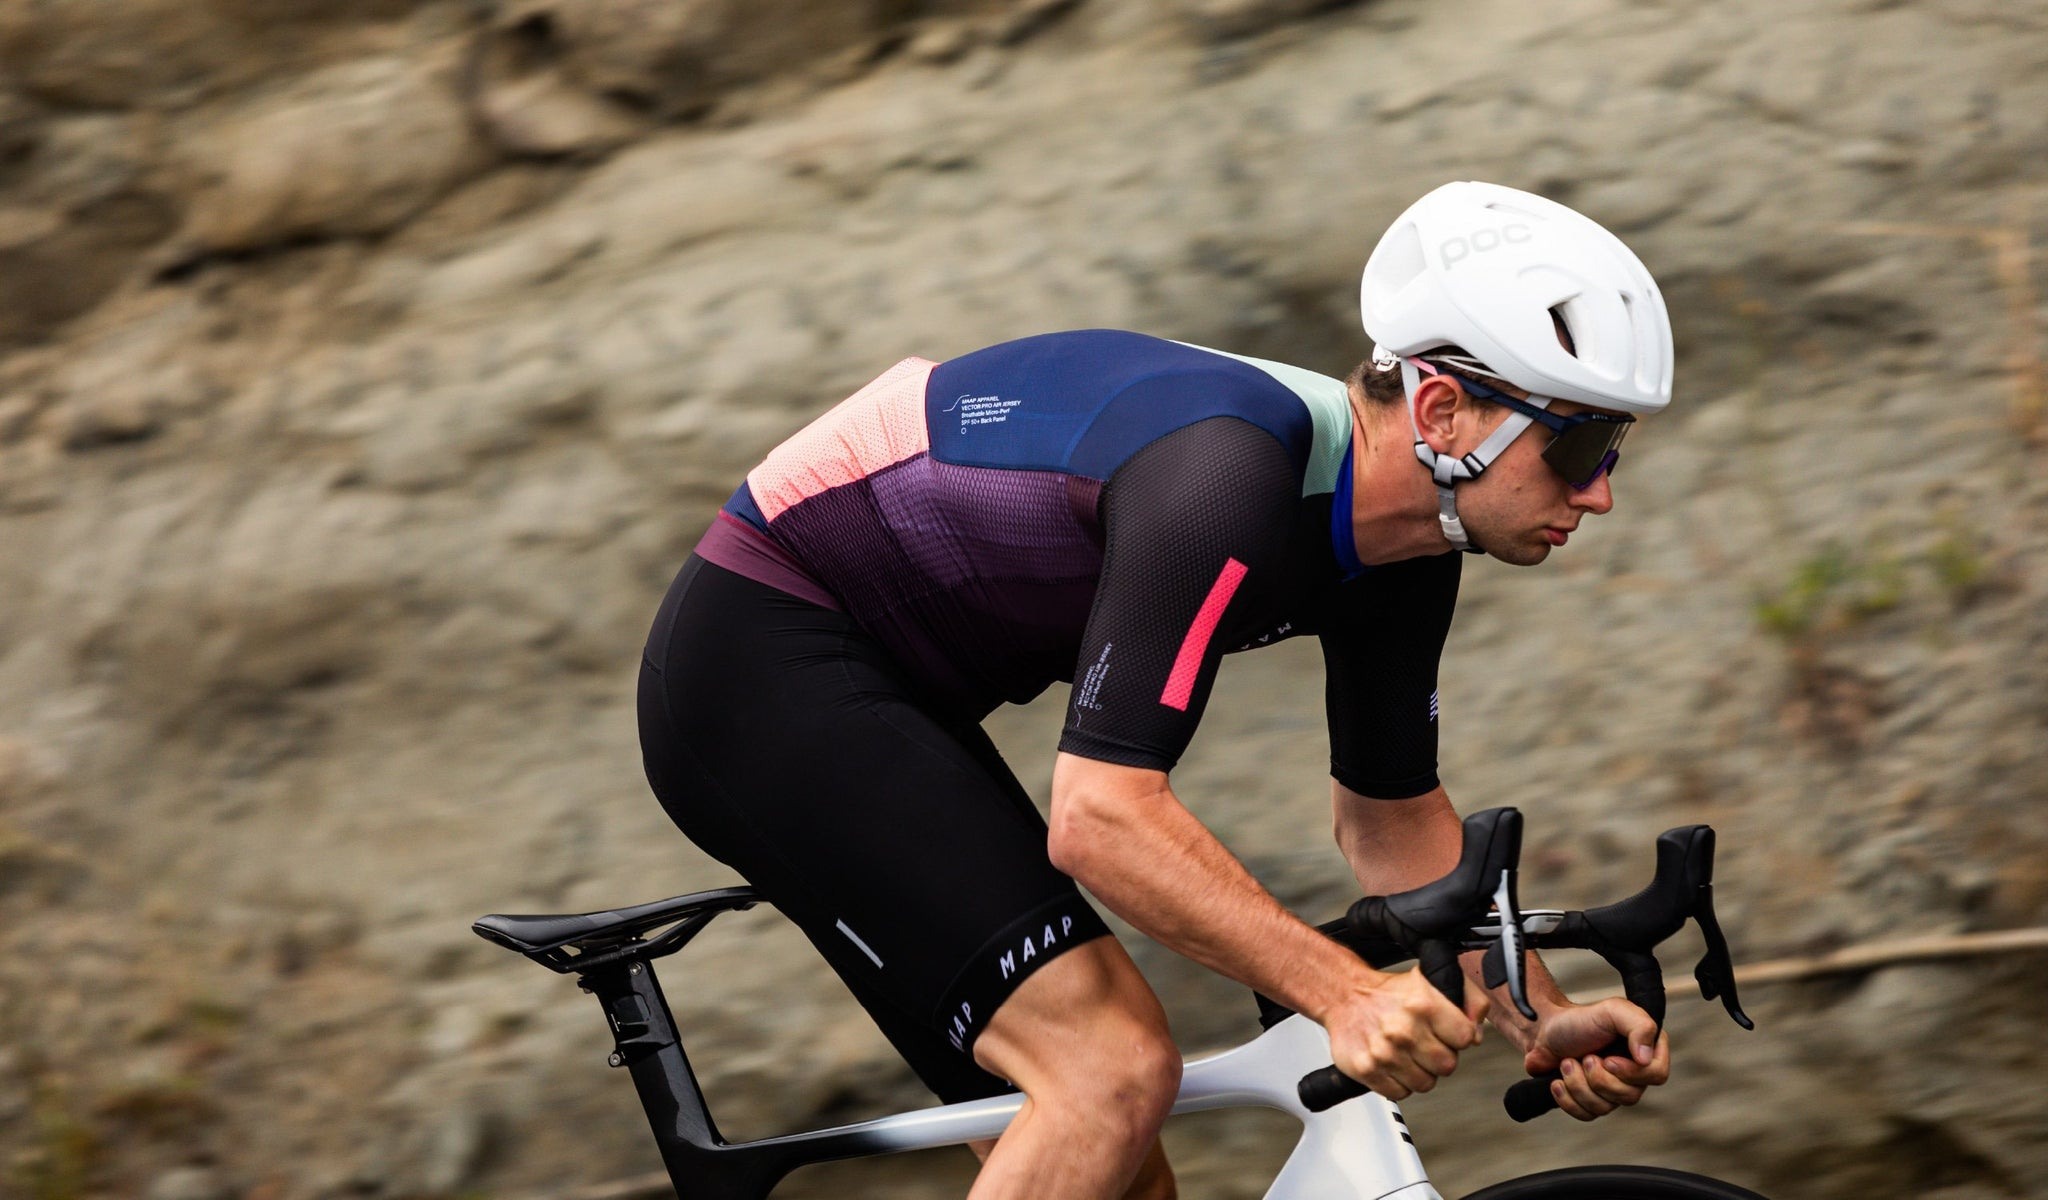 MAAP Vector Short Sleeve Cycling Jersey in Grape for riding in warm conditions.